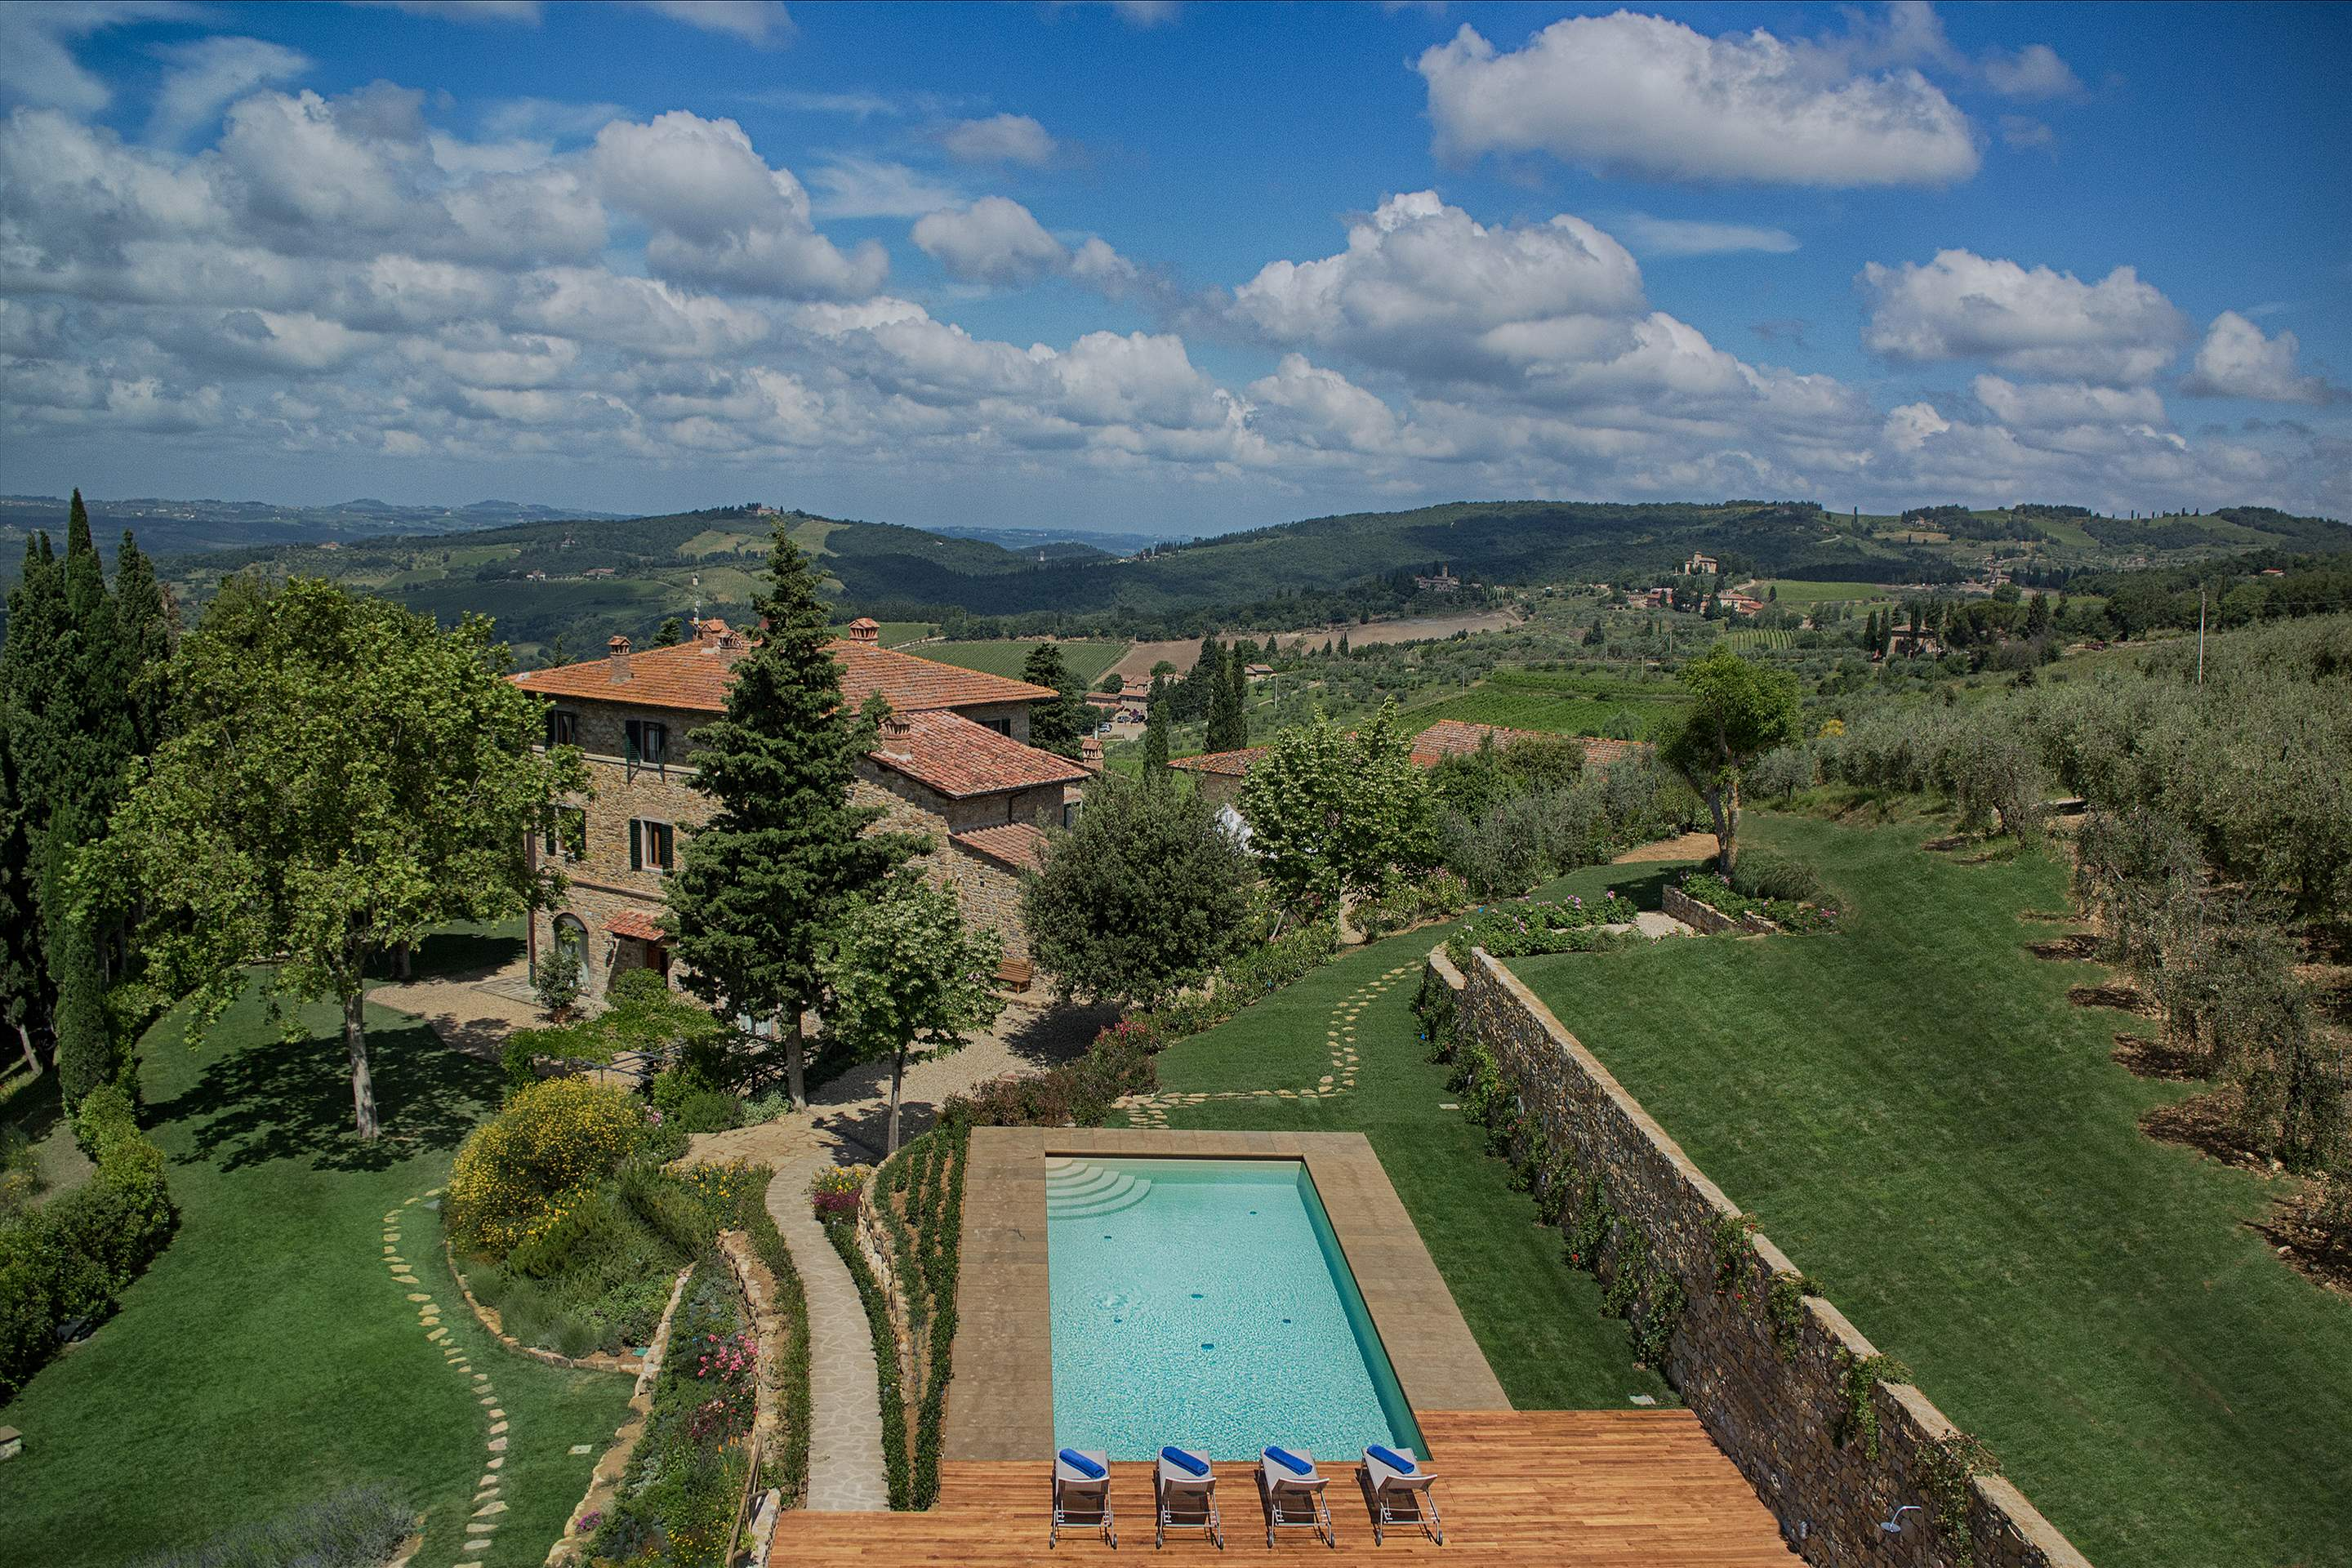 Villa La Valetta, 1 Bed Apt Ulivo, 1 bedroom villa in Chianti & Countryside, Tuscany Photo #6